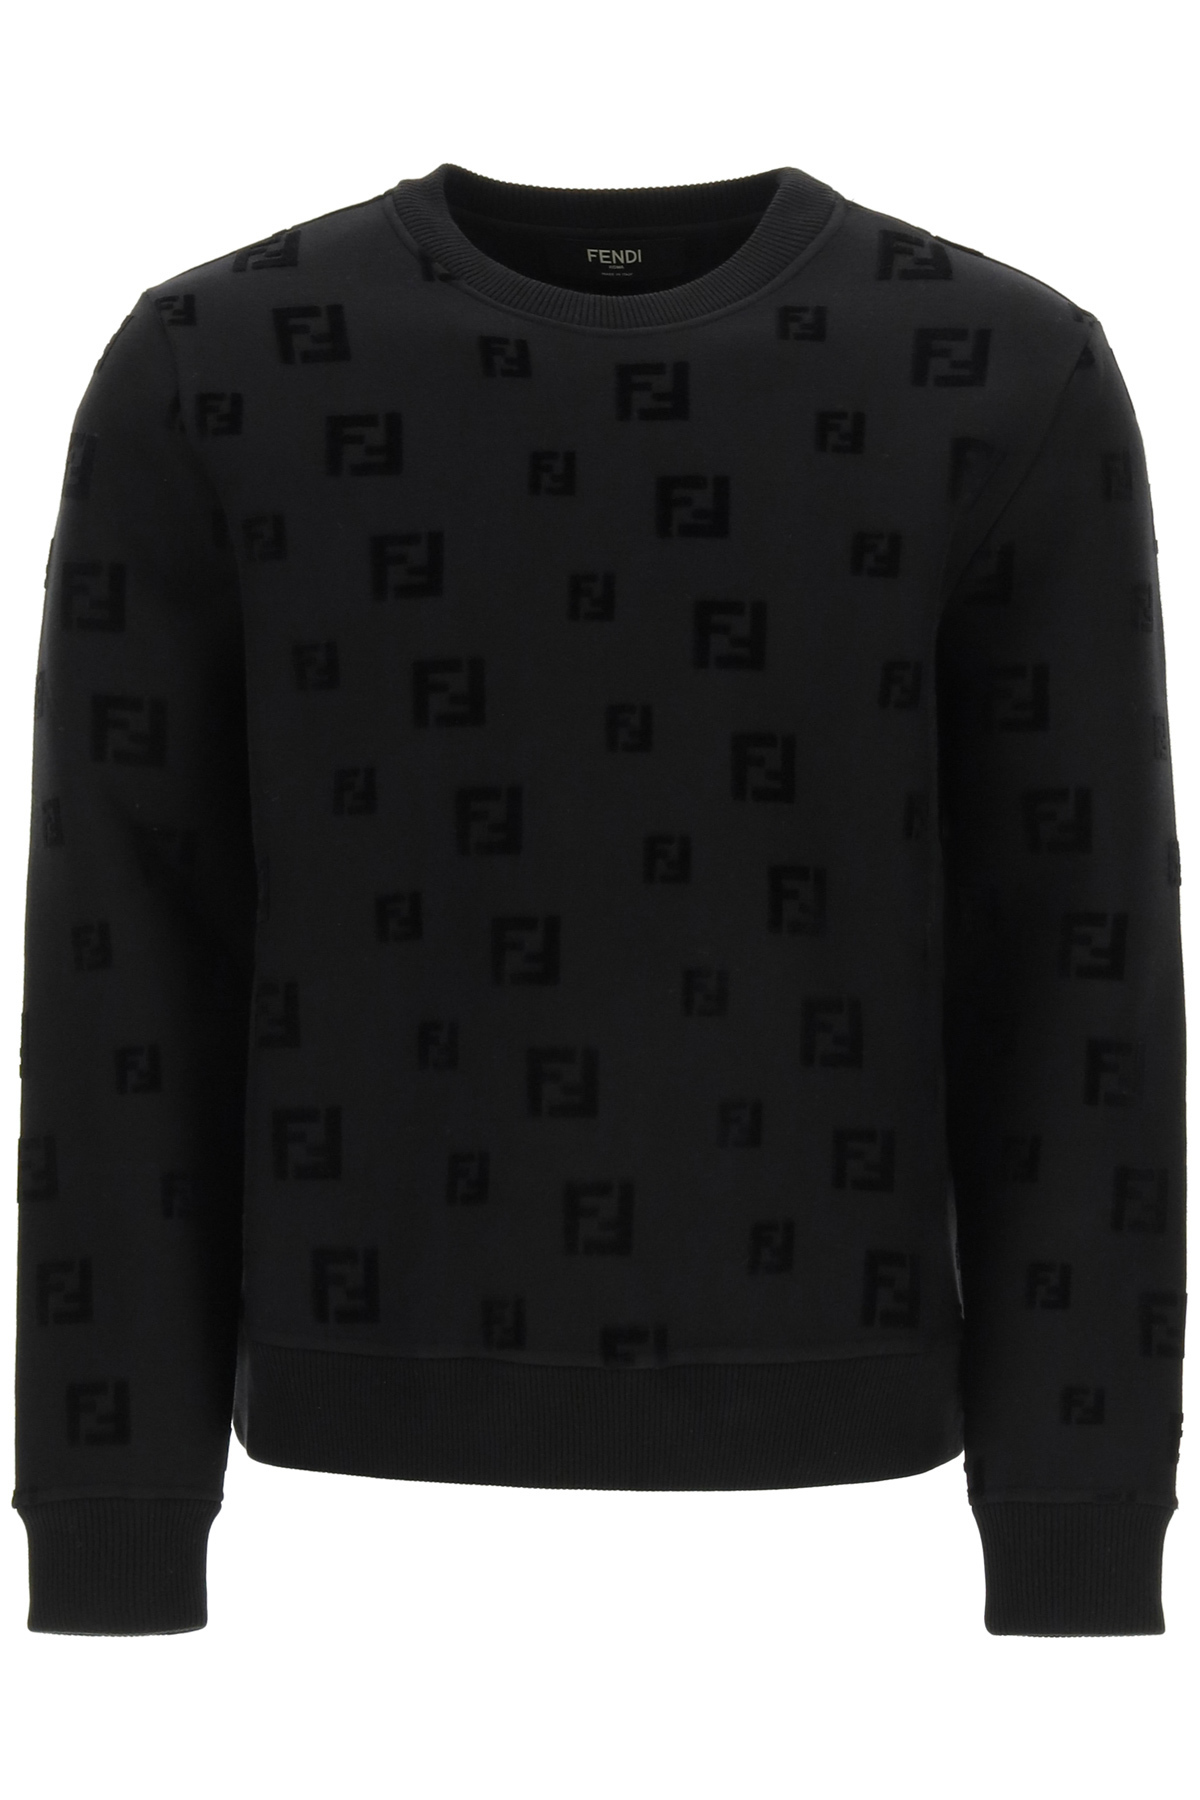 FENDI CREW NECK SWEATSHIRT FF LOGO S Black Cotton